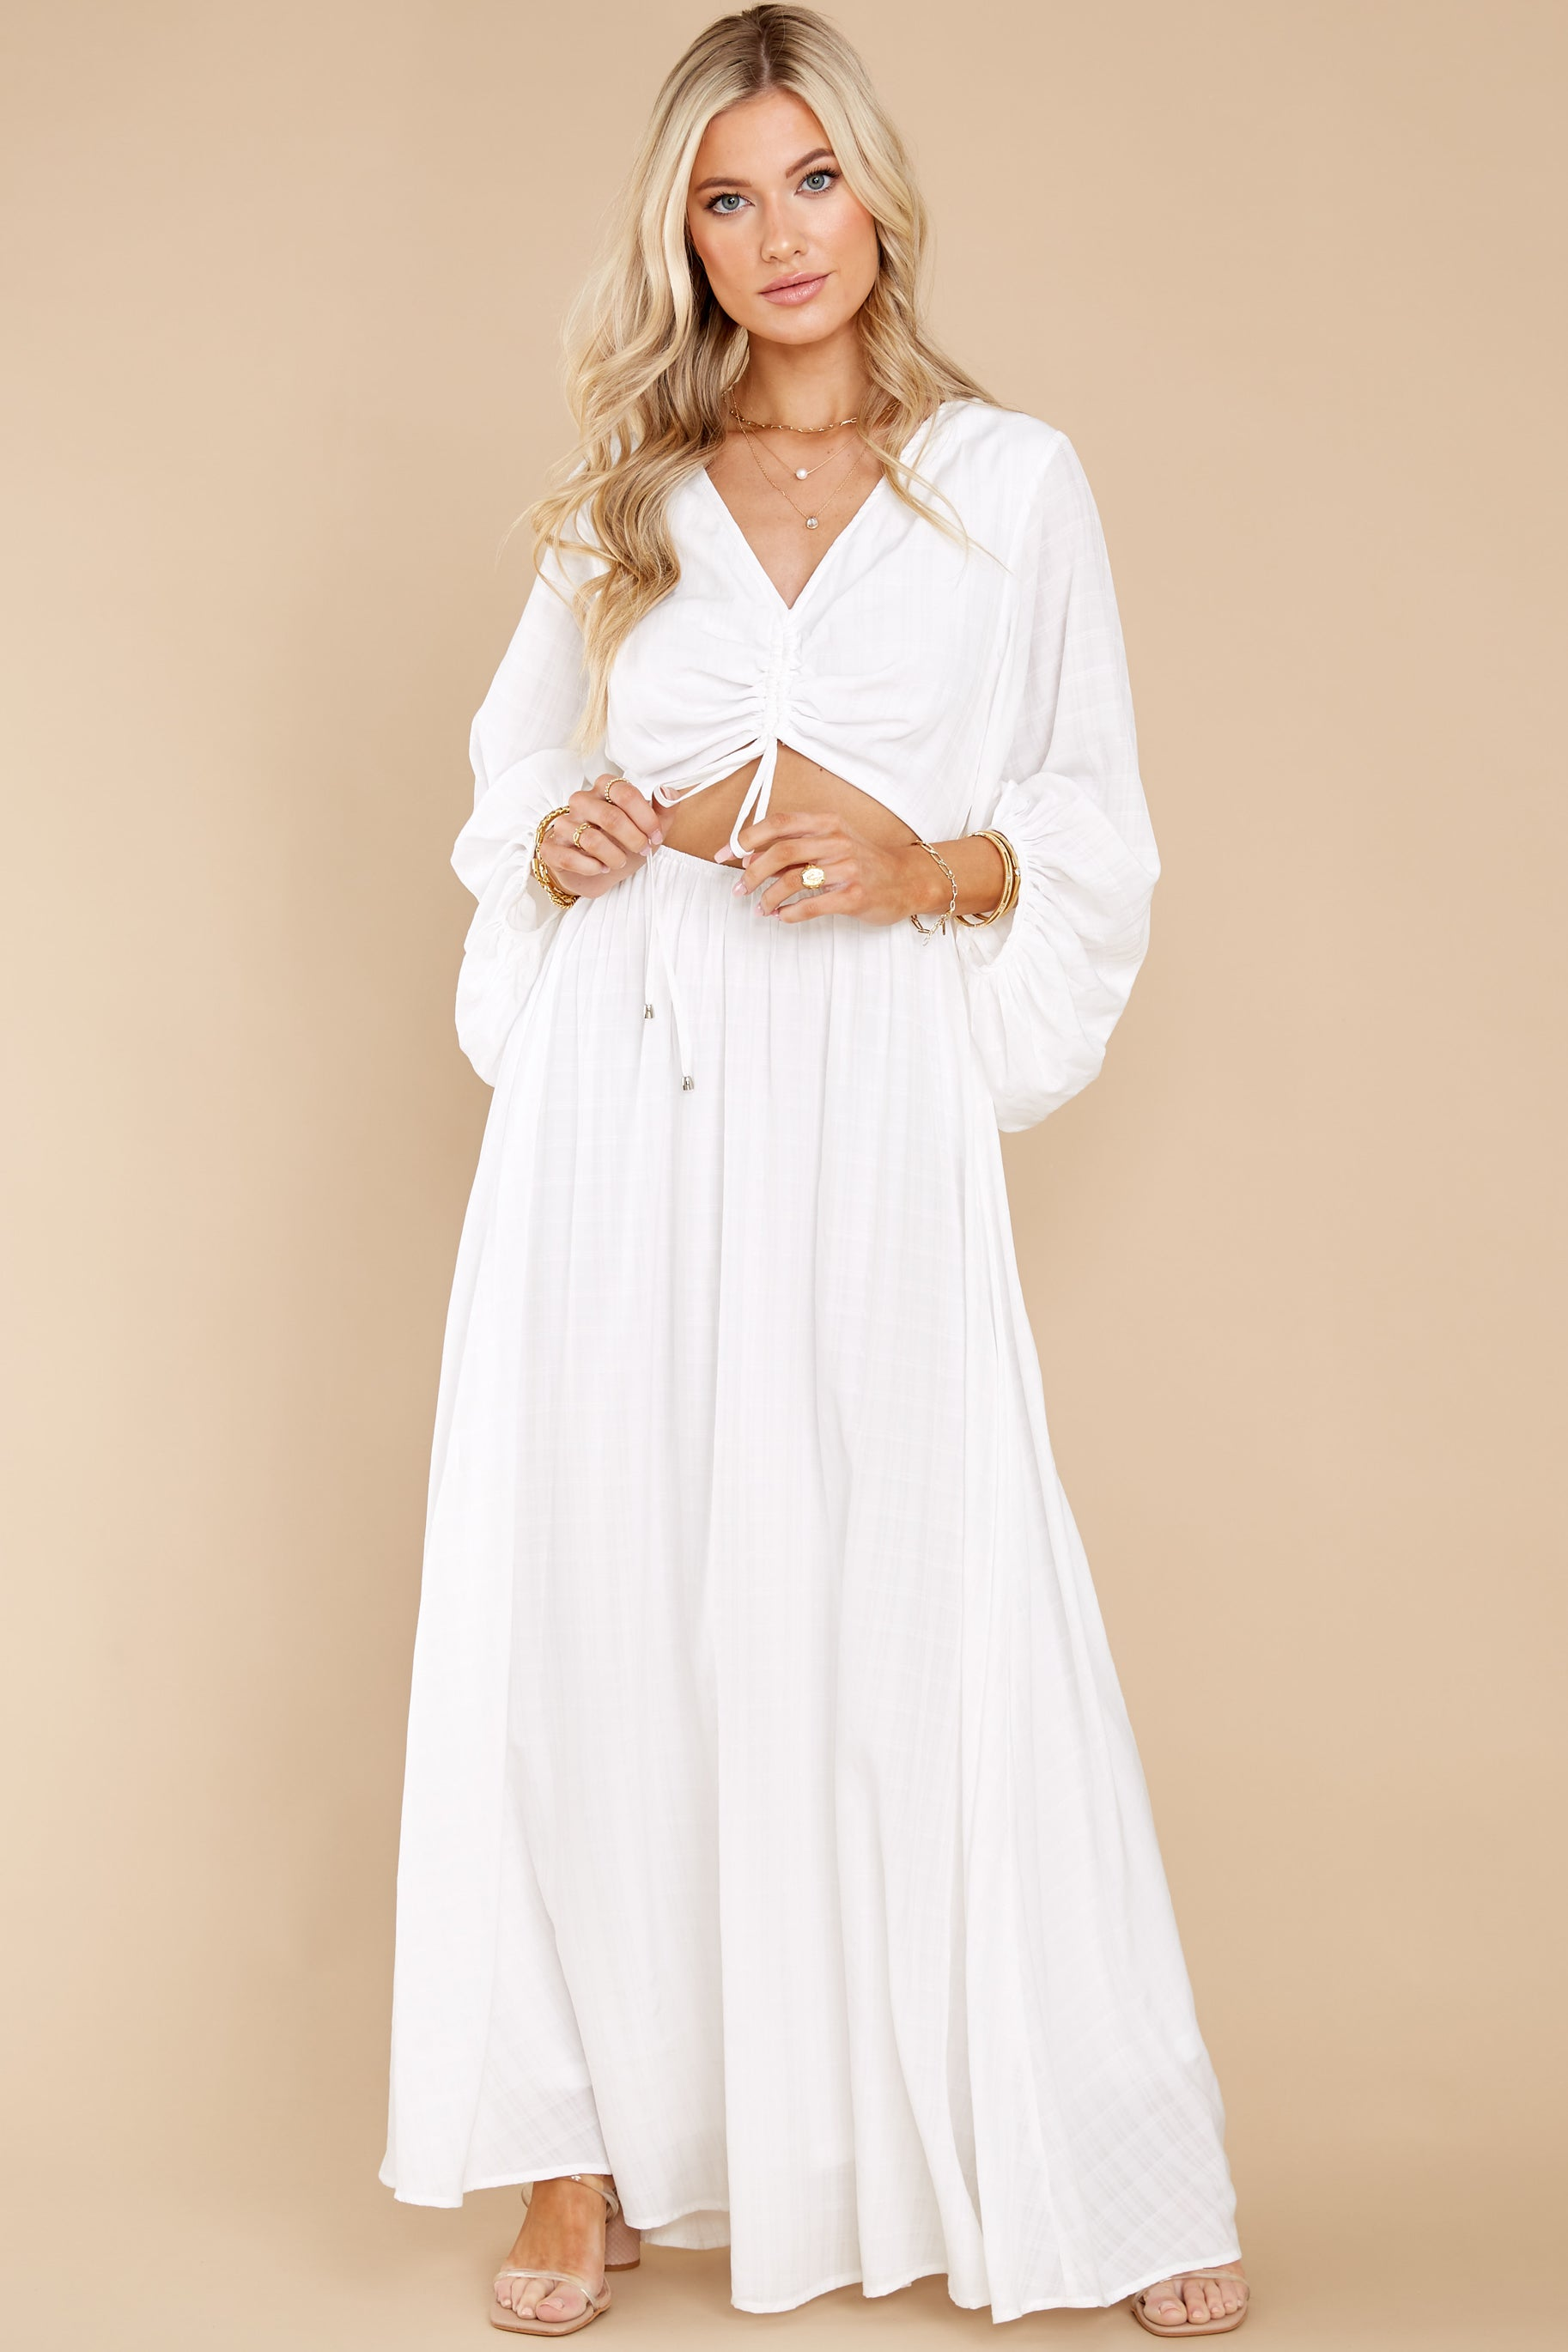 8 Going For This Off White Maxi Dress at reddress.com